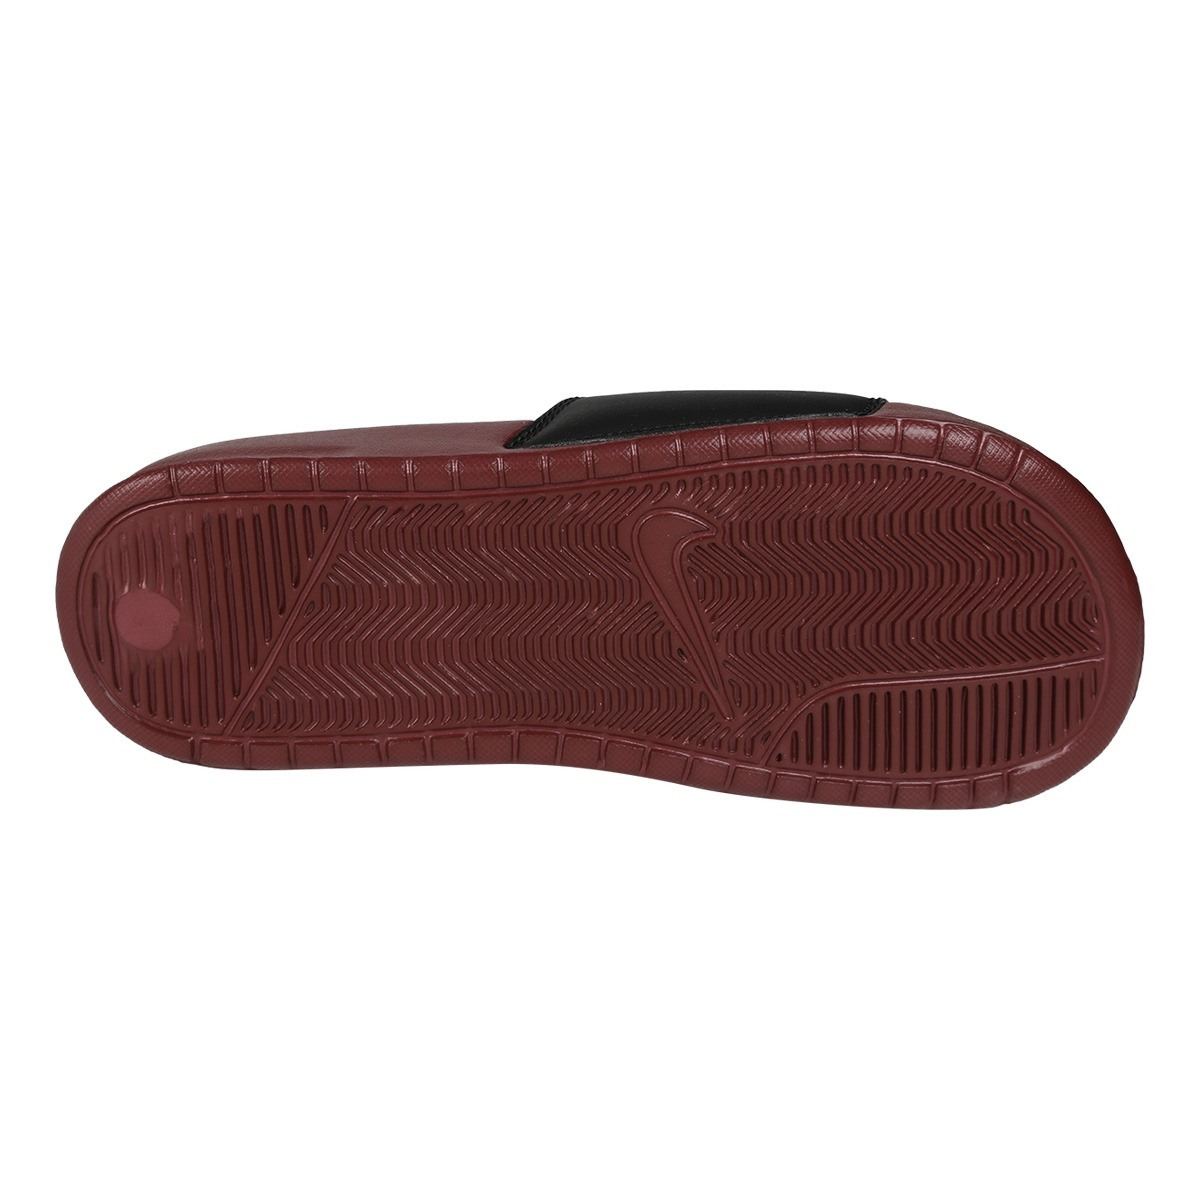 cf8e5d60538 Carregando zoom... 10 chinelo sandalia nike benassi just do it original com  nfe